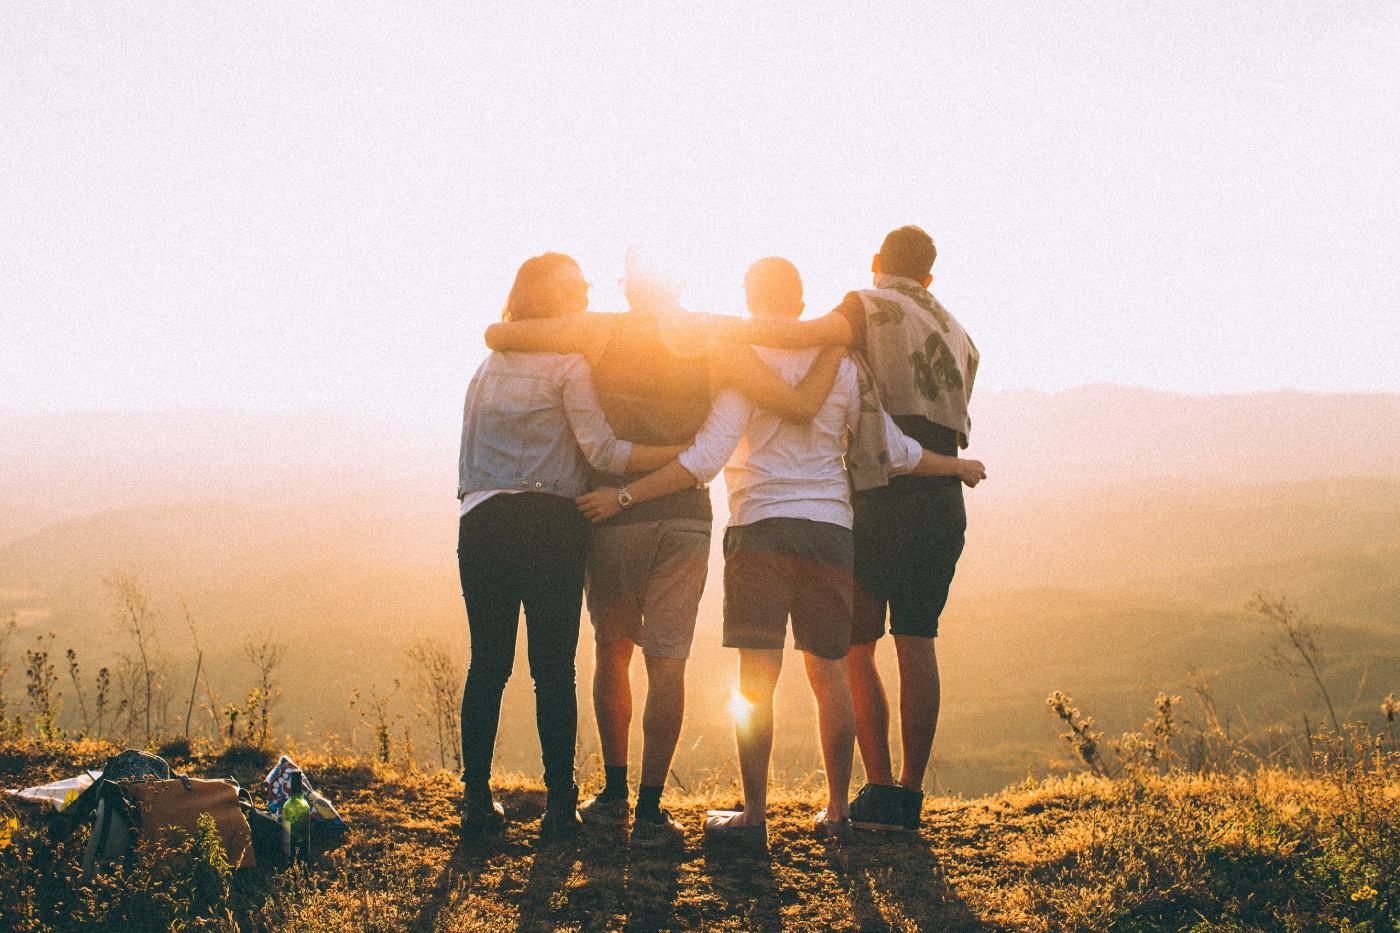 Four people stand on a hilltop with their arms around each other's waists, watching the sun set.